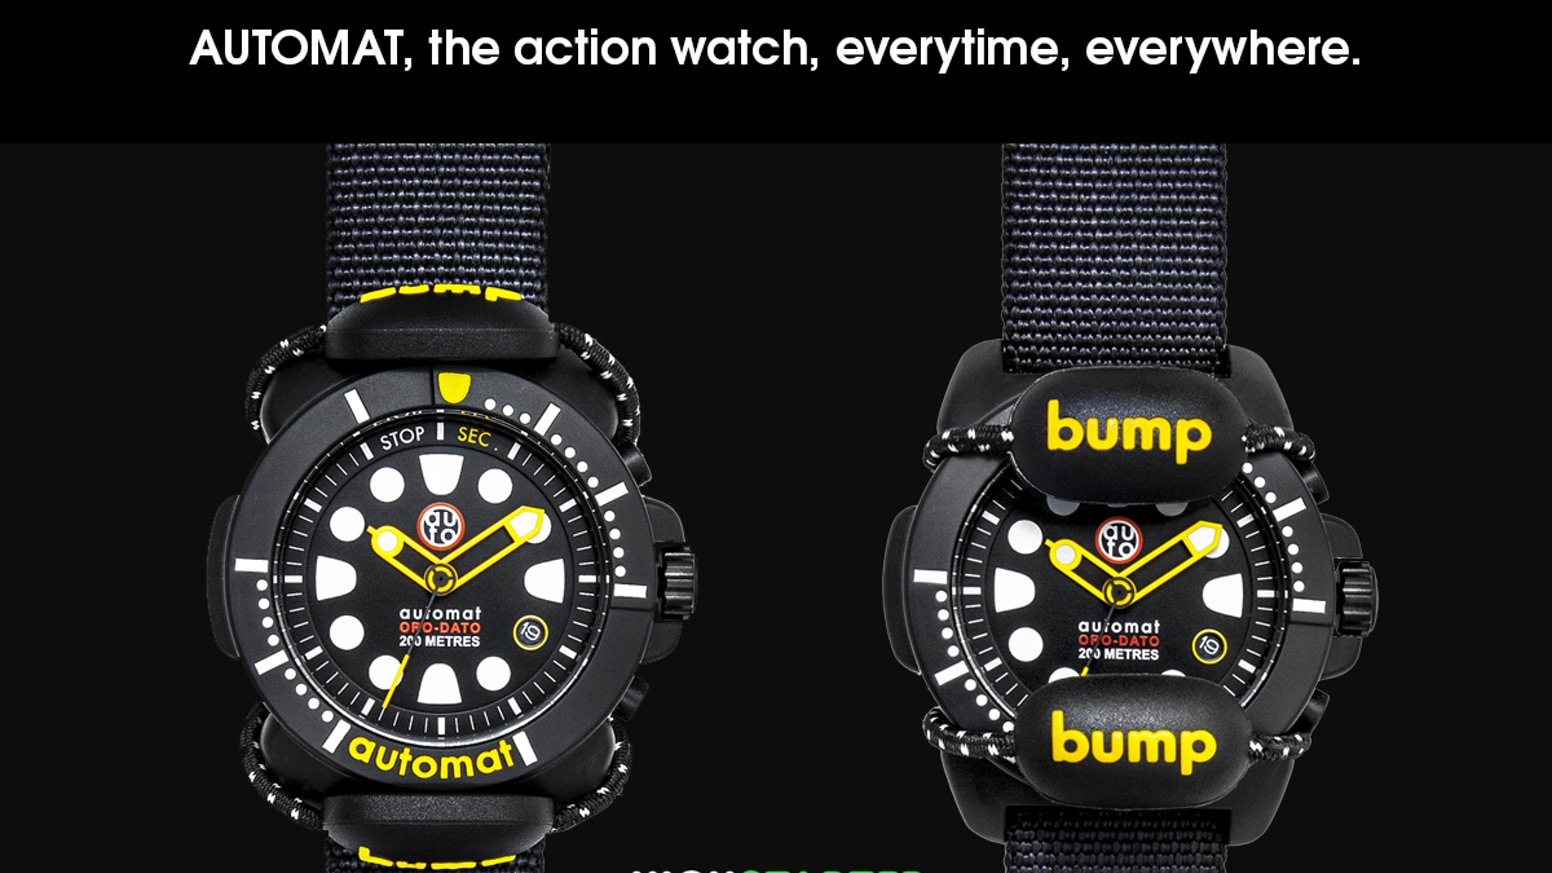 New watches inspired by military diver instruments 20ATM. Patented removable protection for your adventures.